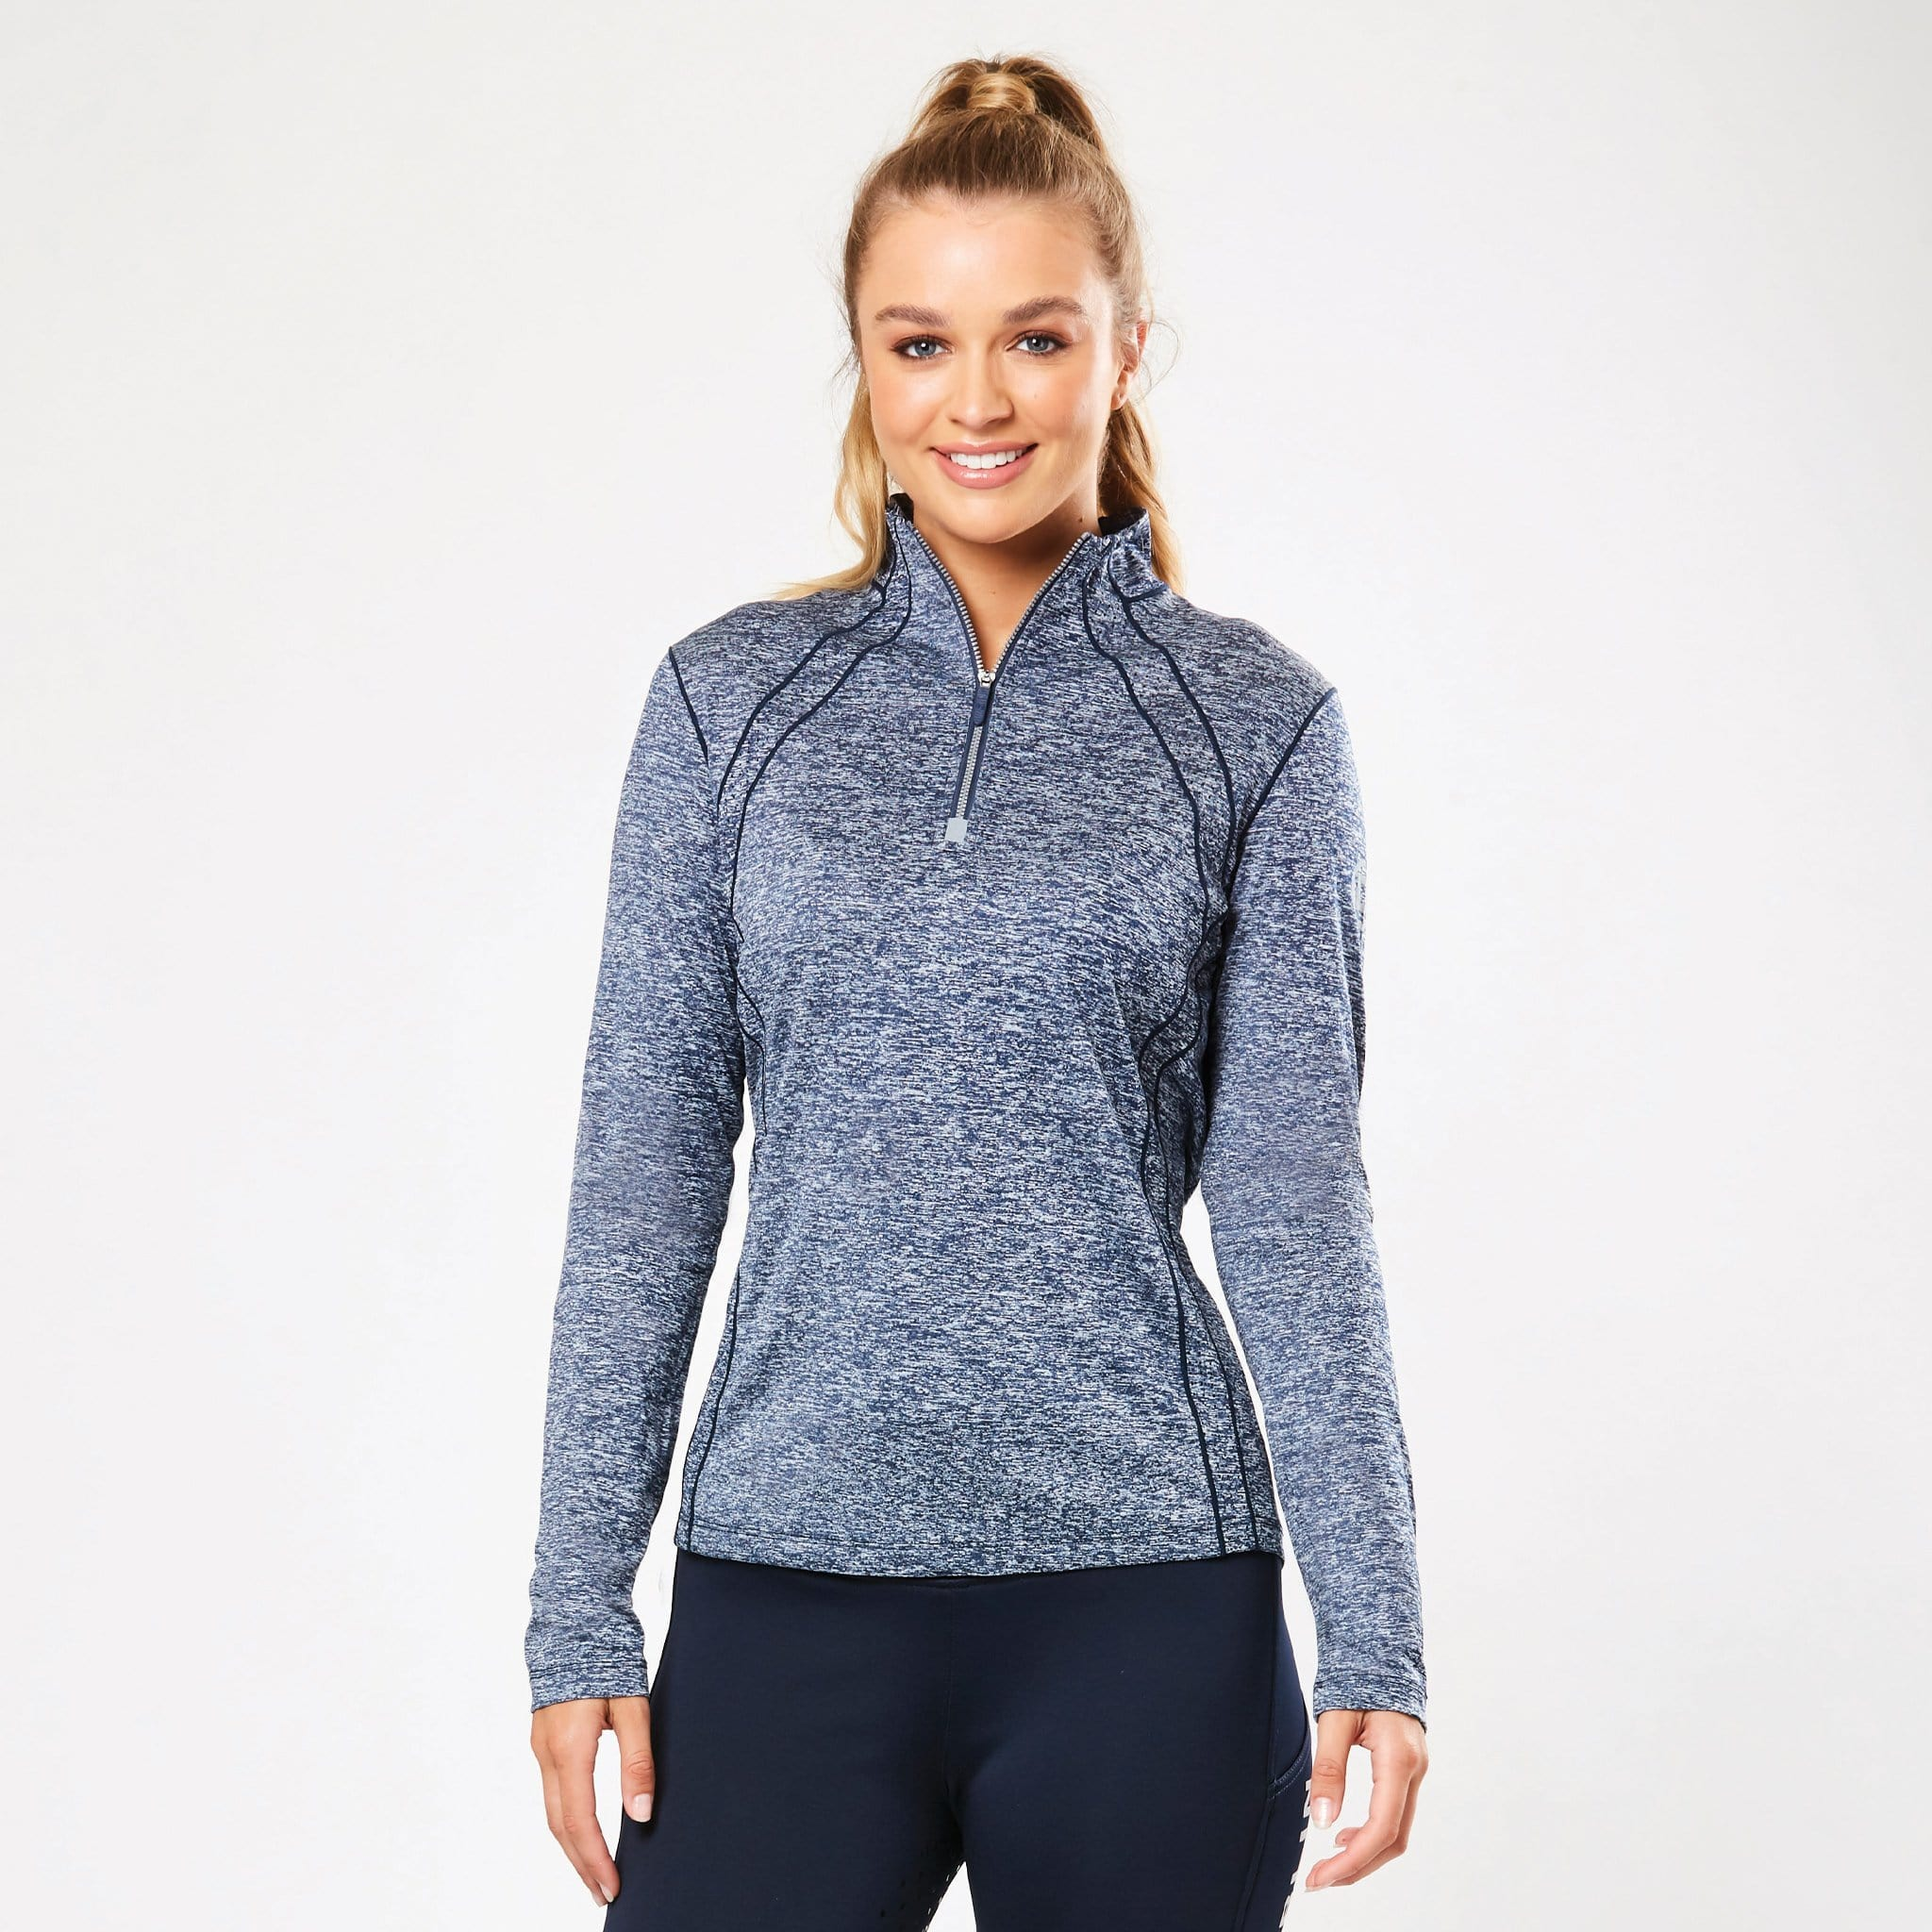 Dublin Maddison Technical Long Sleeve Top 1003001003 Blue Indigo Melange Front View On Model